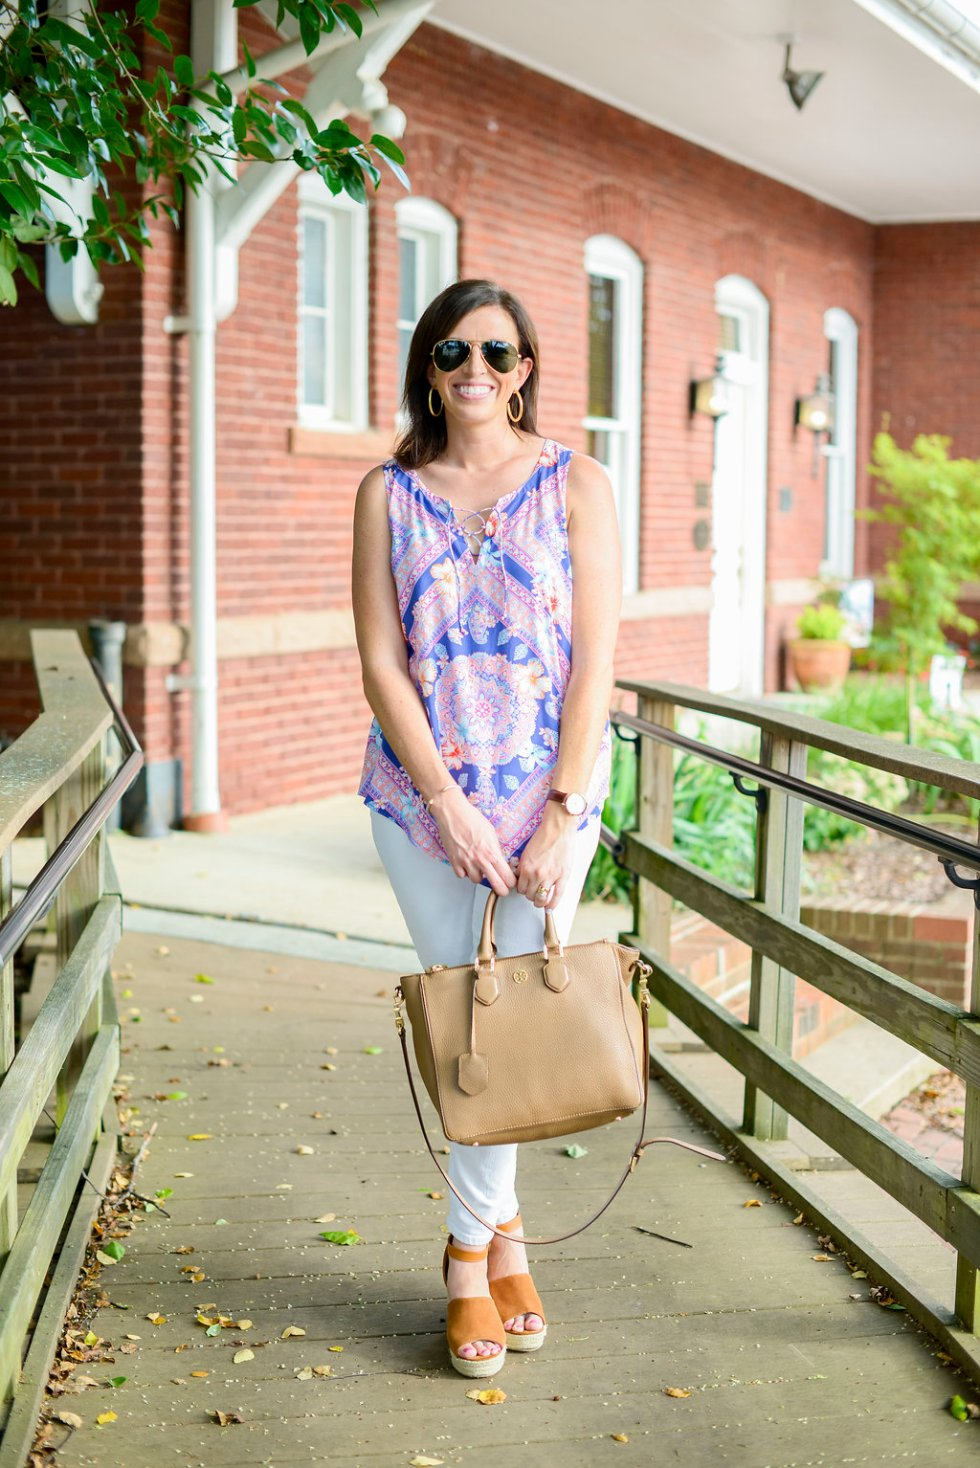 J. Jill Scarf Print Top + White Jeans - @mbg0112 - I'm Fixin' To